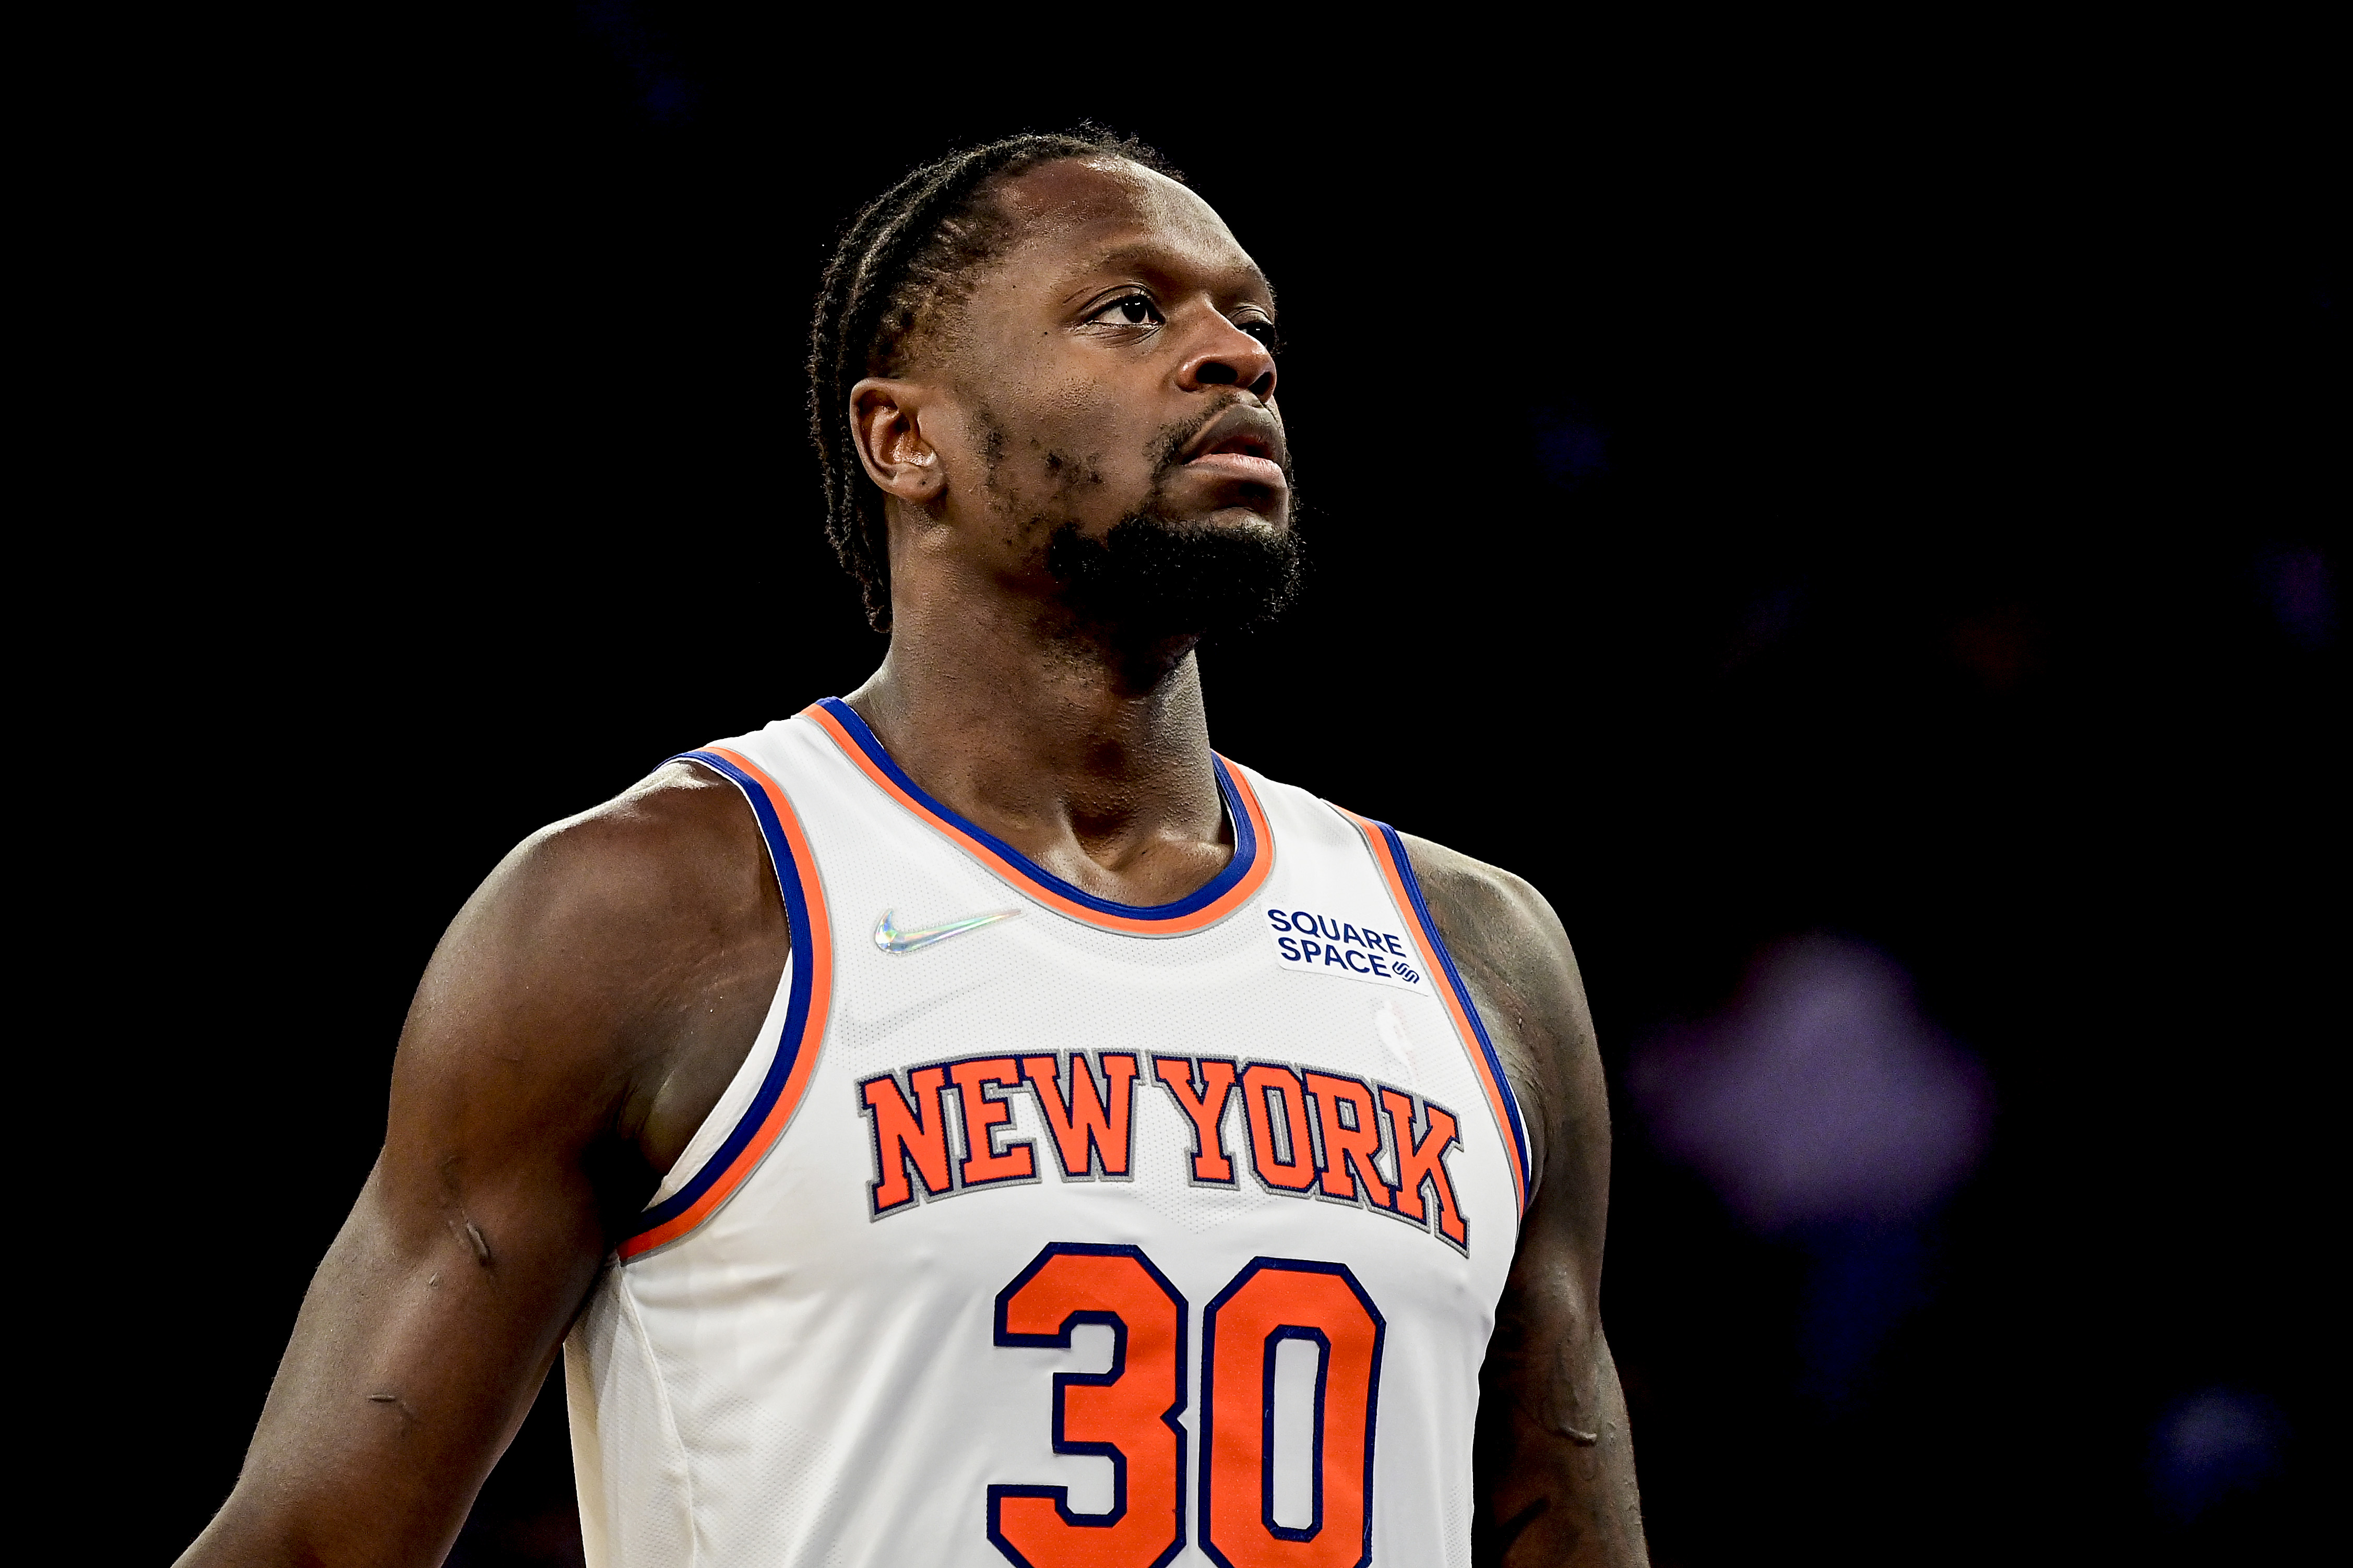 Julius Randle #30 of the New York Knicks looks on against the Washington Wizards during a preseason game at Madison Square Garden on October 15, 2021 in New York City.